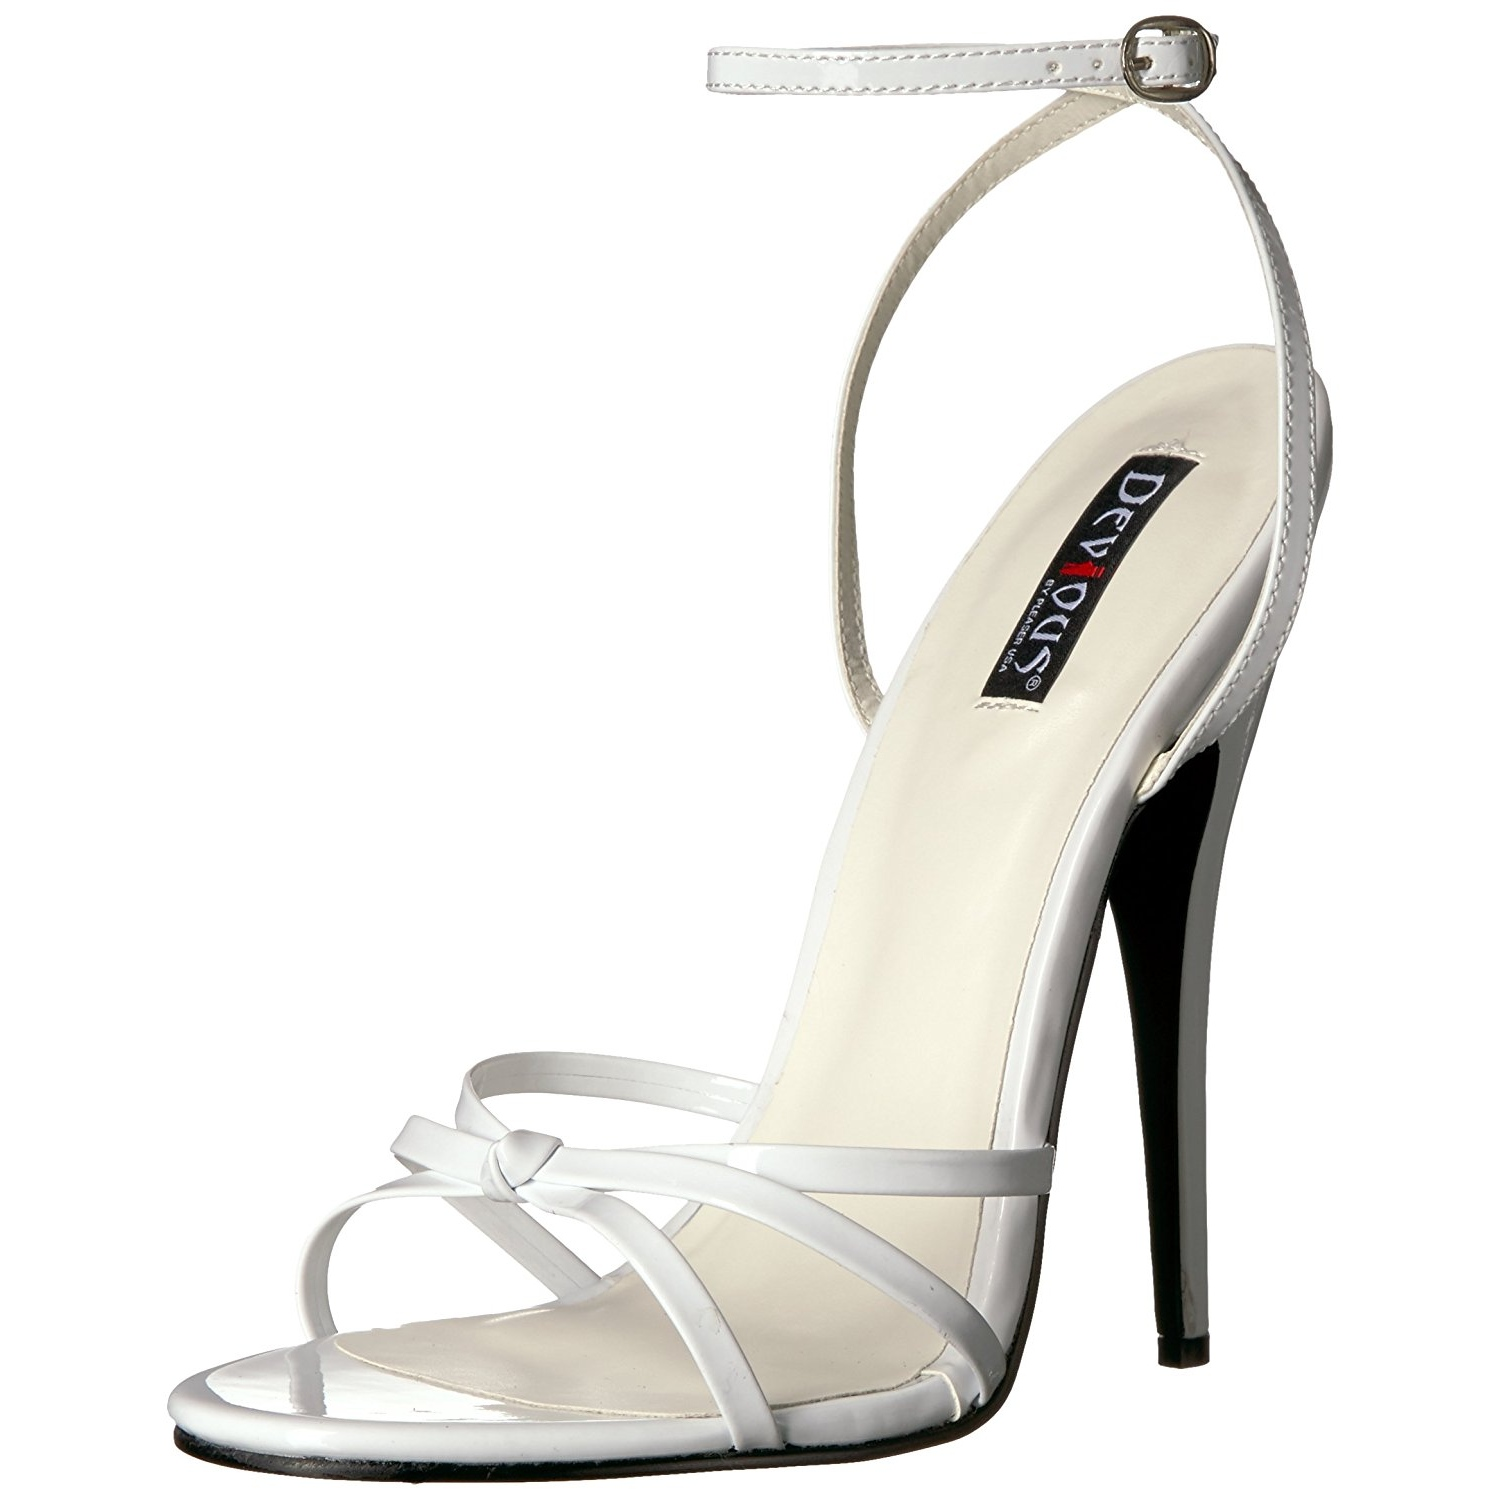 ce7b2b4917f White 15 cm Devious DOMINA-108 high heeled sandals